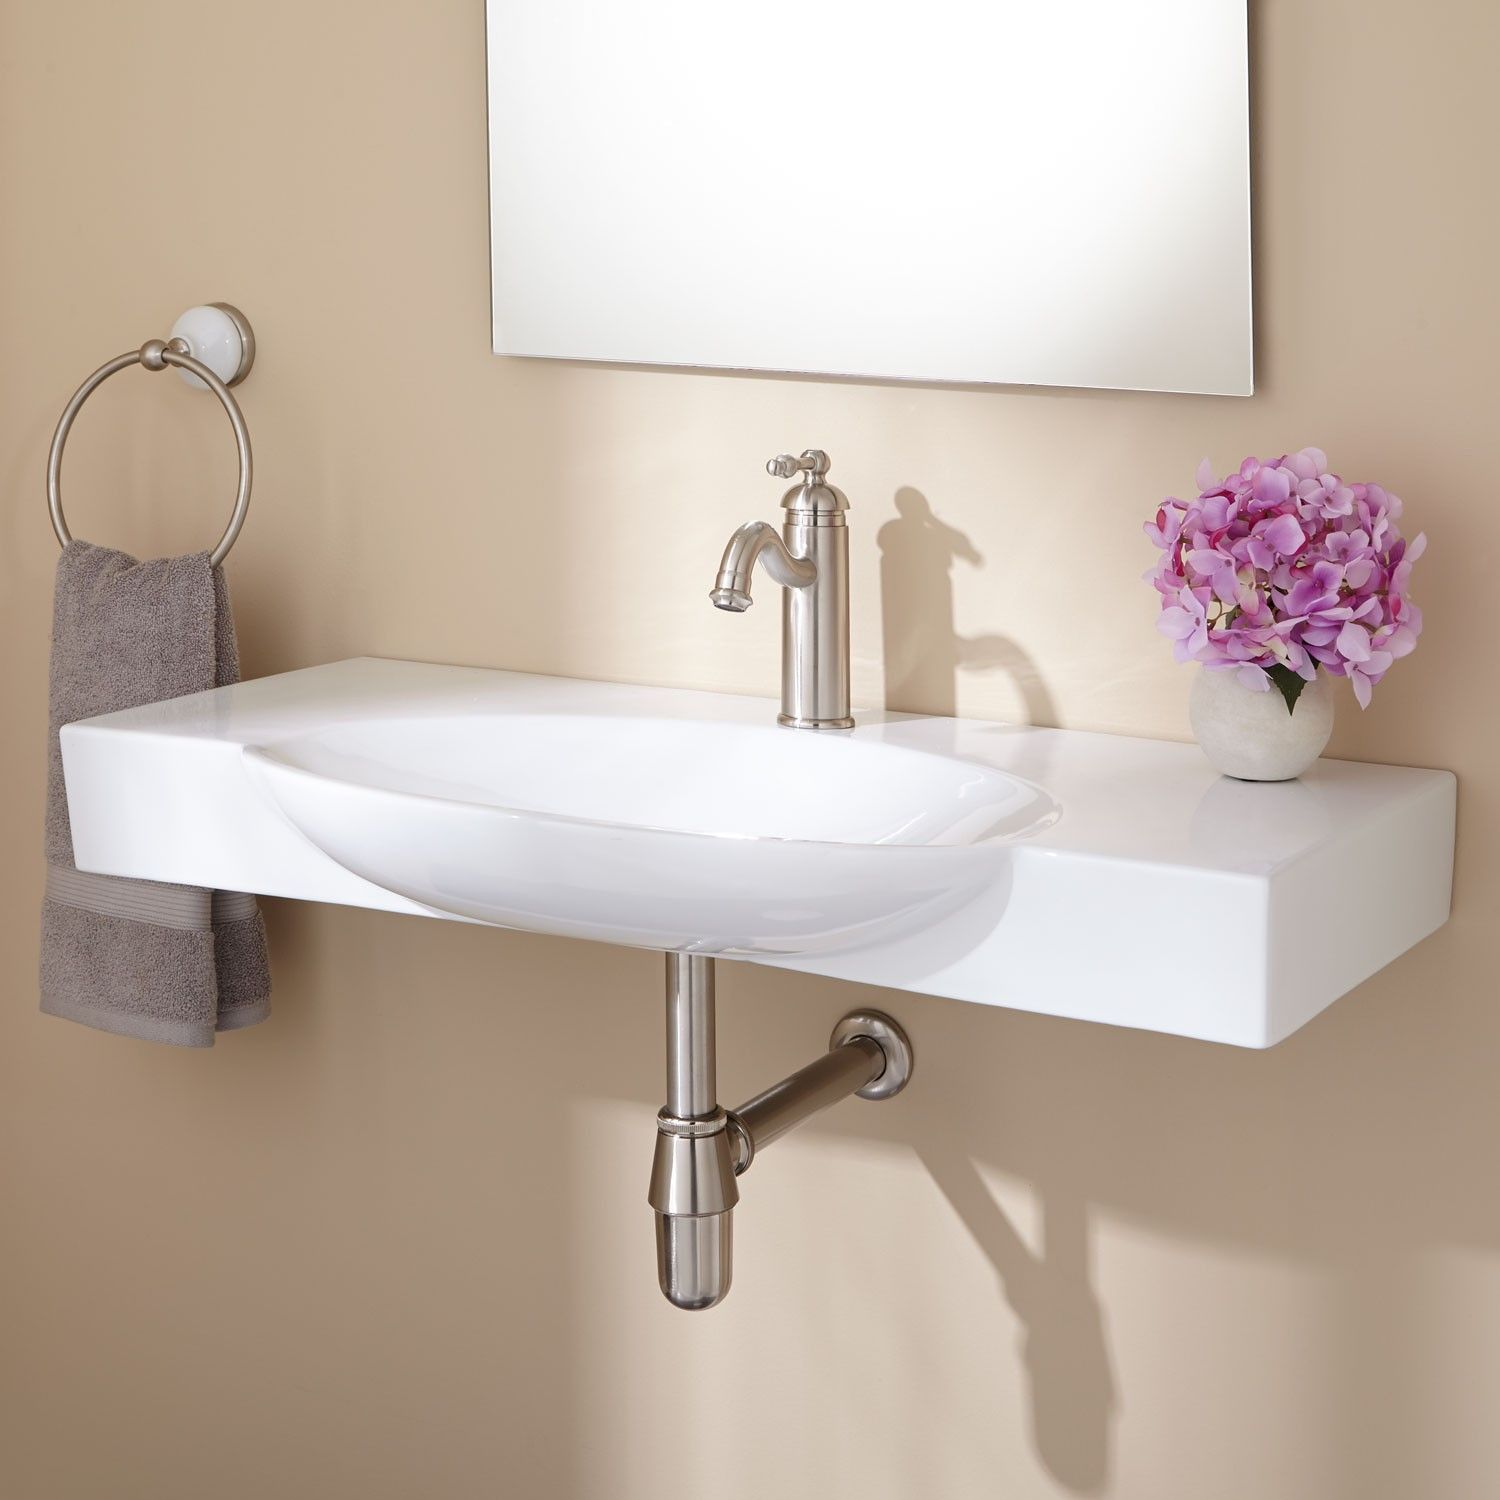 Bathroom Sink Wall Mount